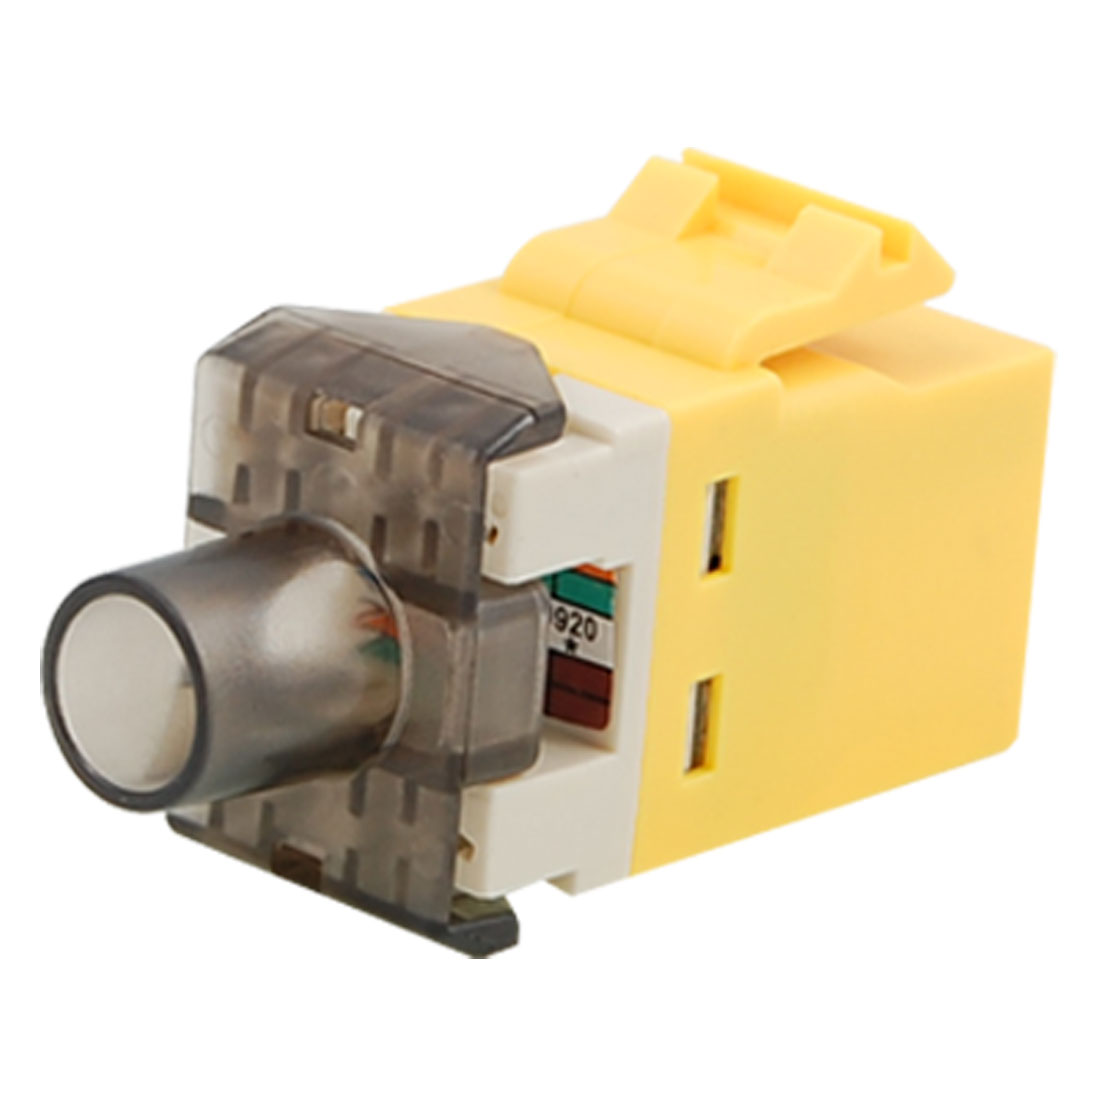 Networking Cate RJ45 Jack Module Connector Adapter